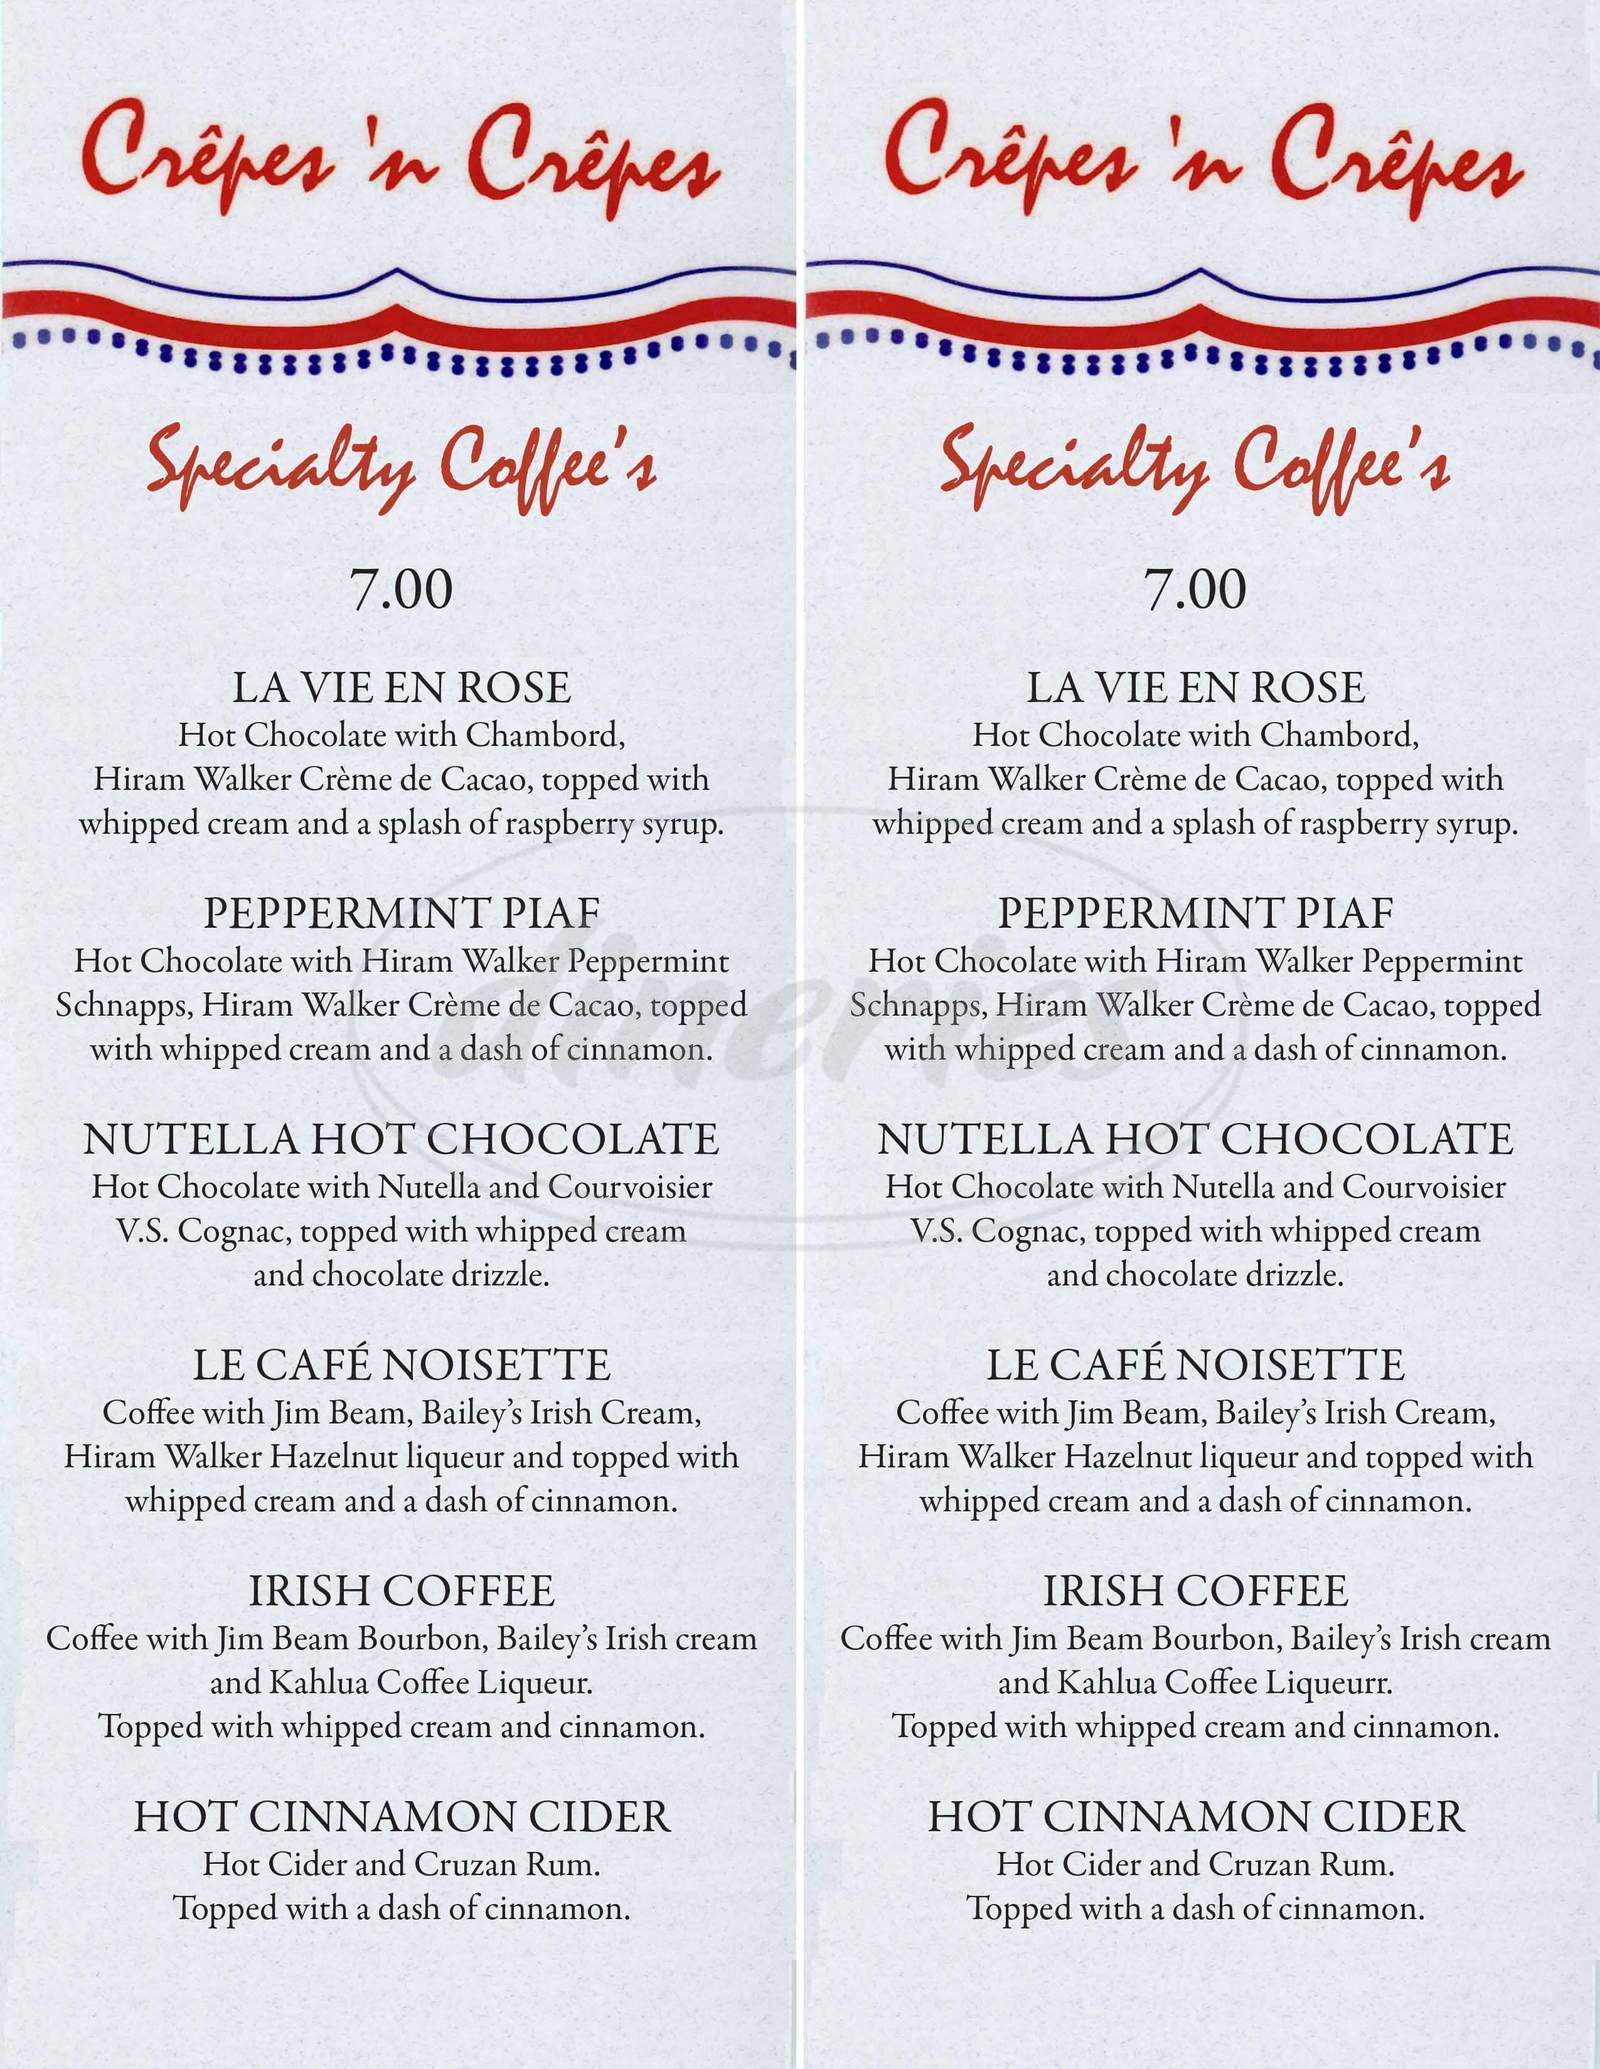 menu for Crepes 'n' Crepes